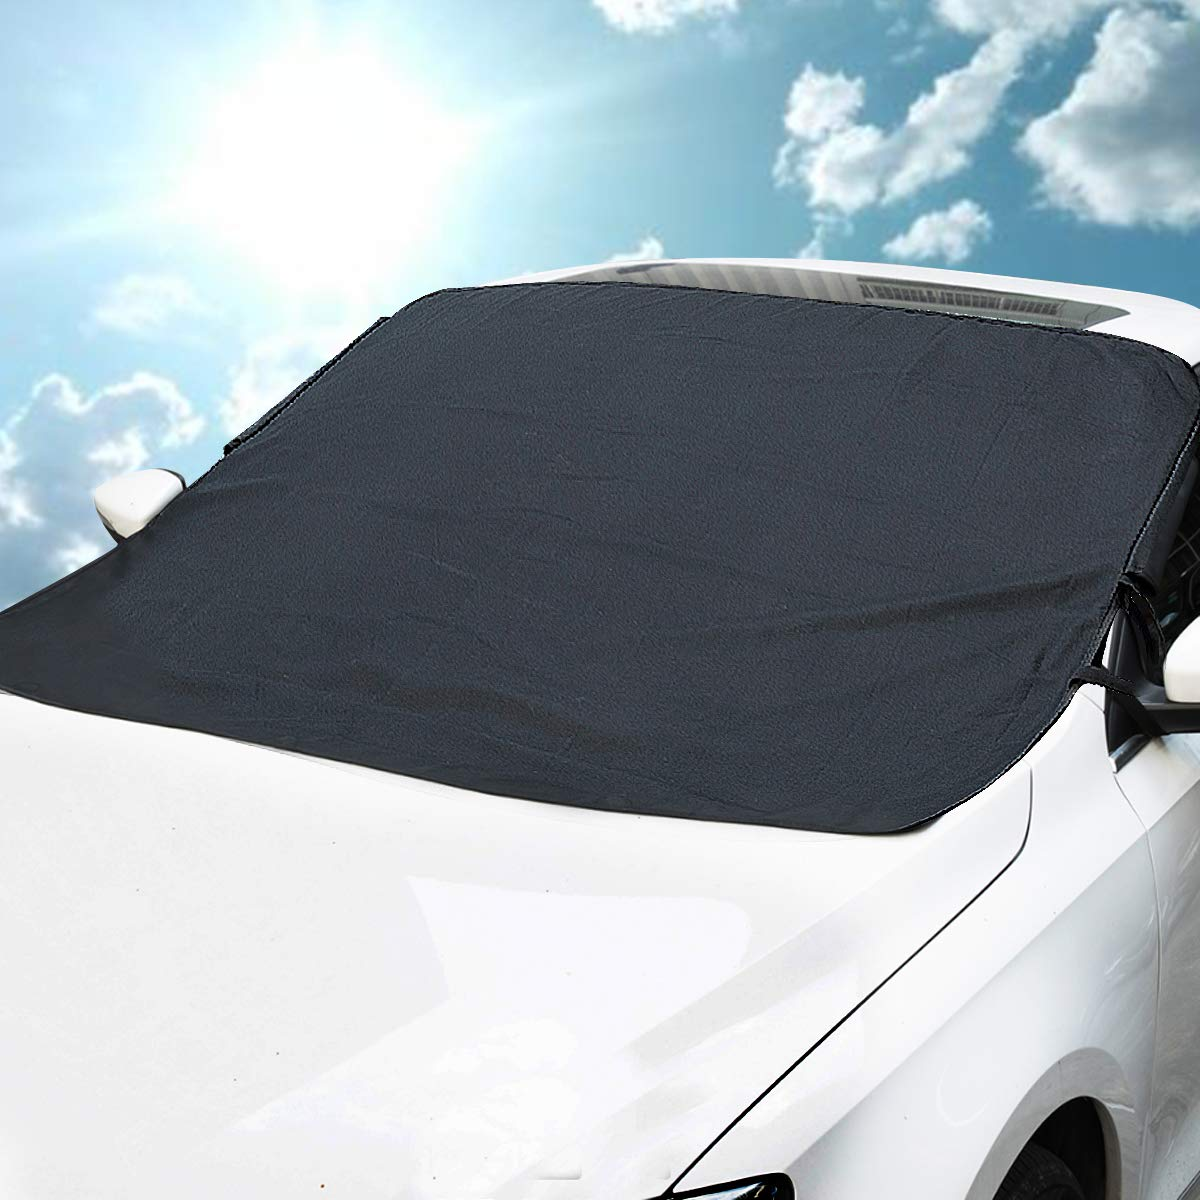 MATCC Car Windscreen Frost Cover Magnetic Snow Cover Windshield Ice Cover for Winter Dust Sun Shade Protector with Lengthened Side Panels in All Weather